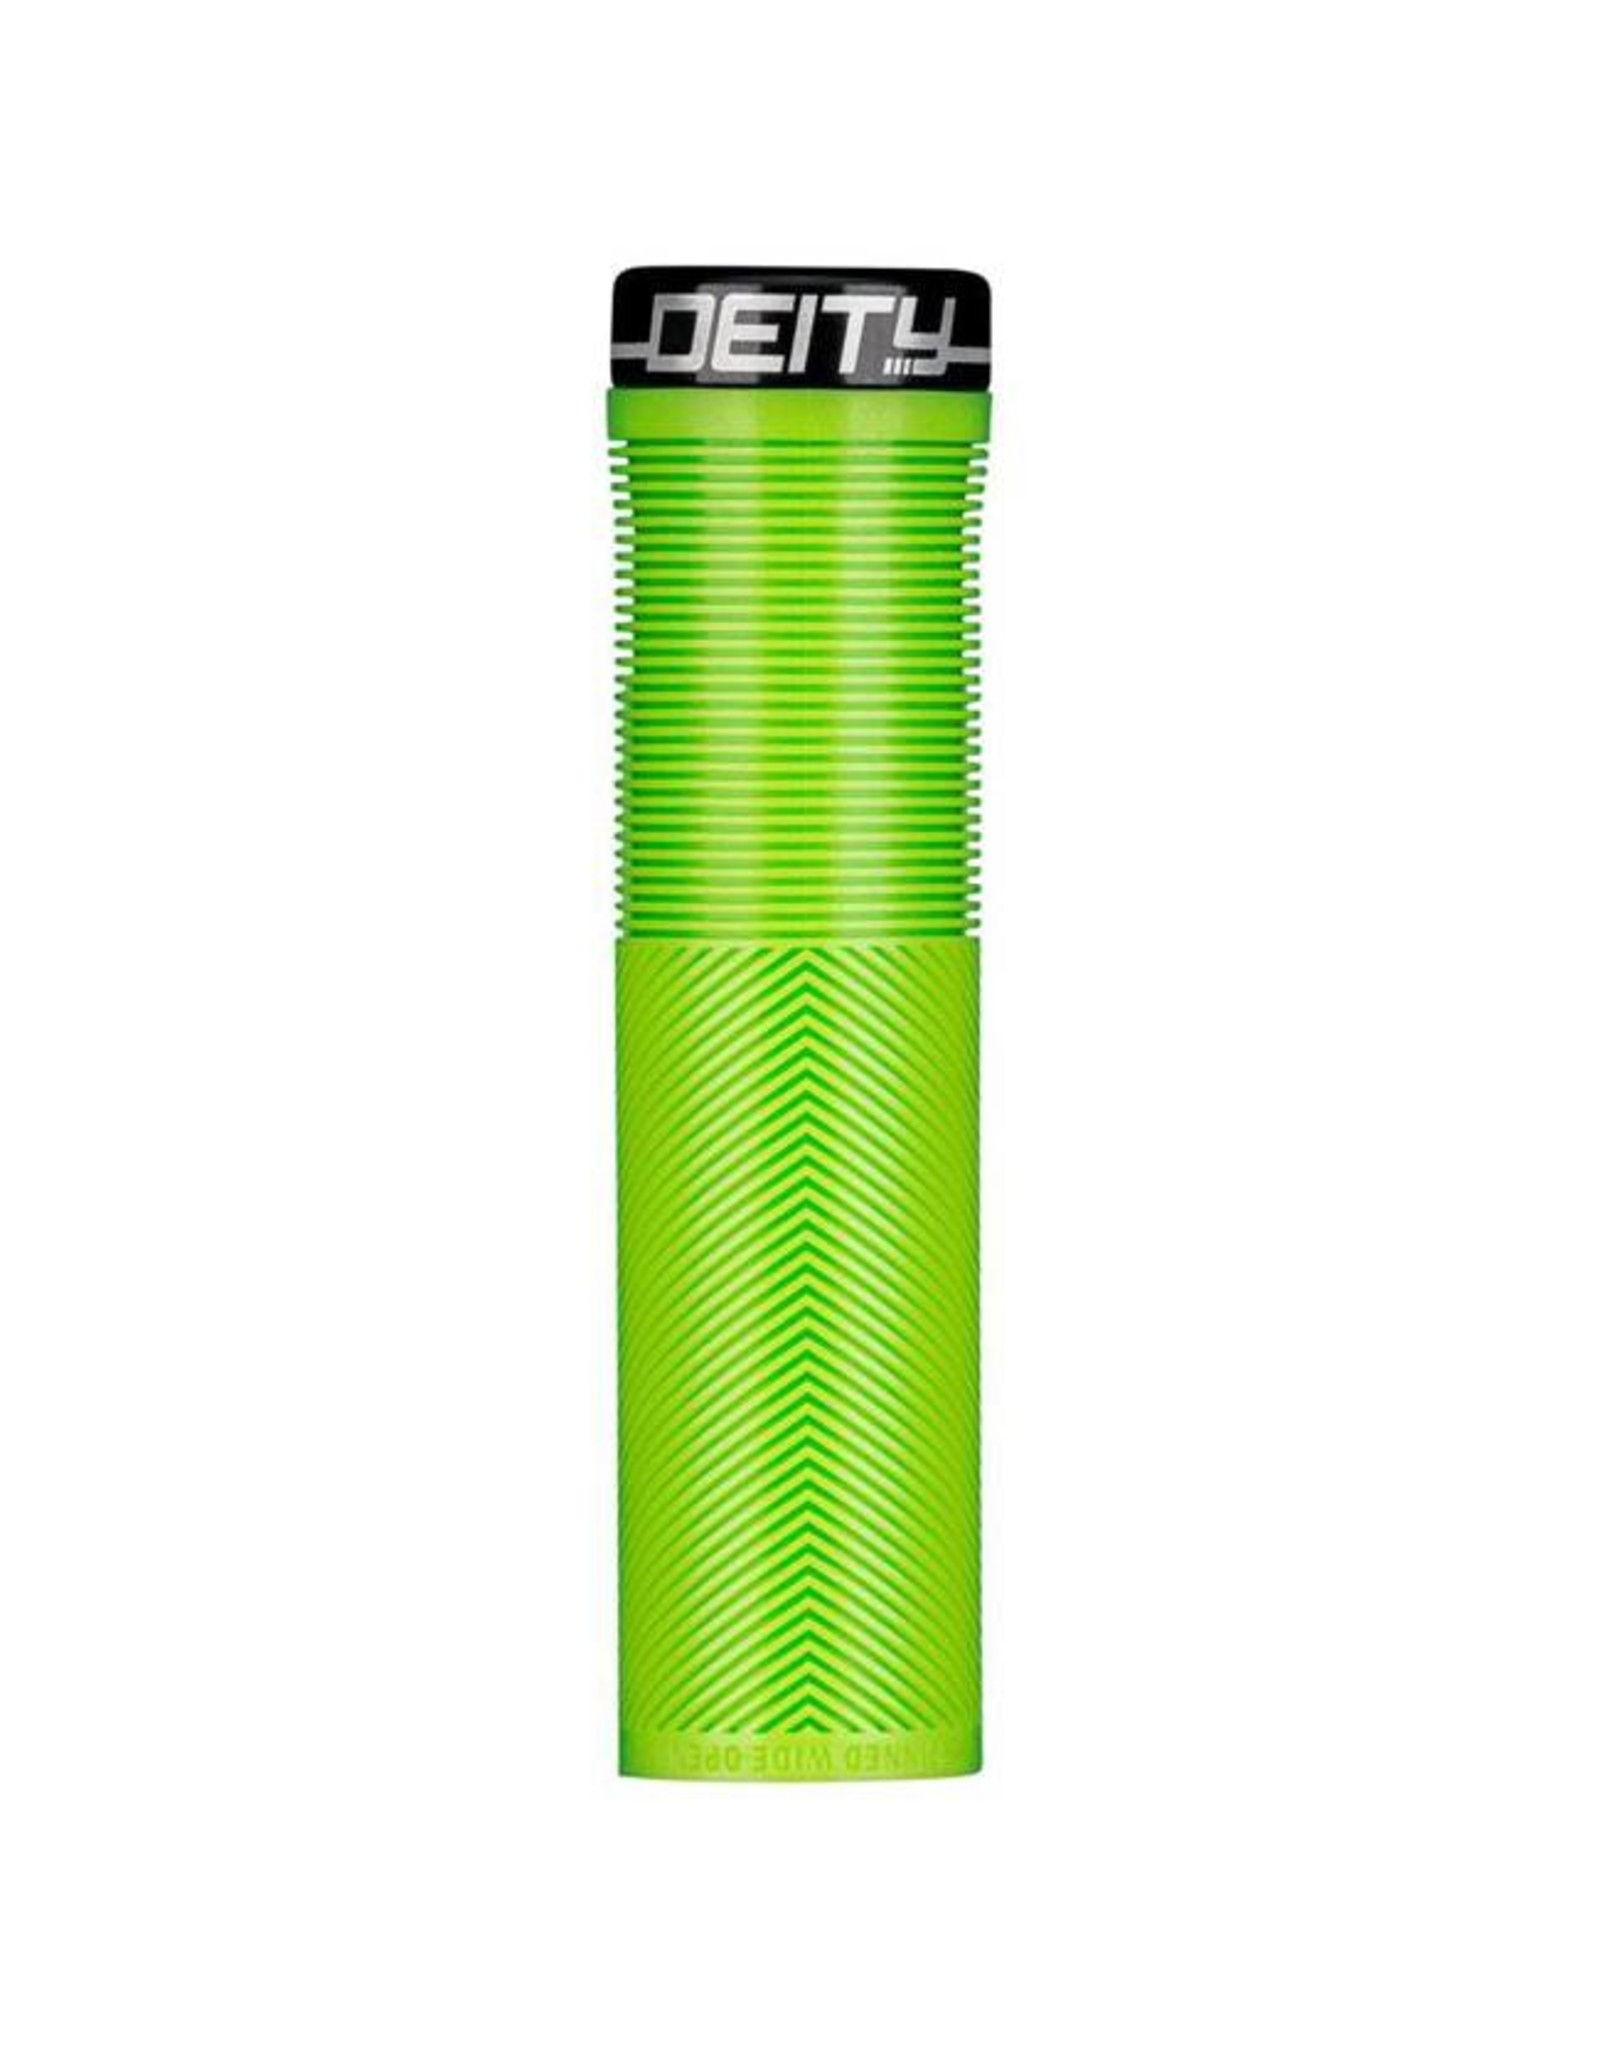 Deity Components Deity Knuckleduster Lock-on Grips: Green with Black Clamp